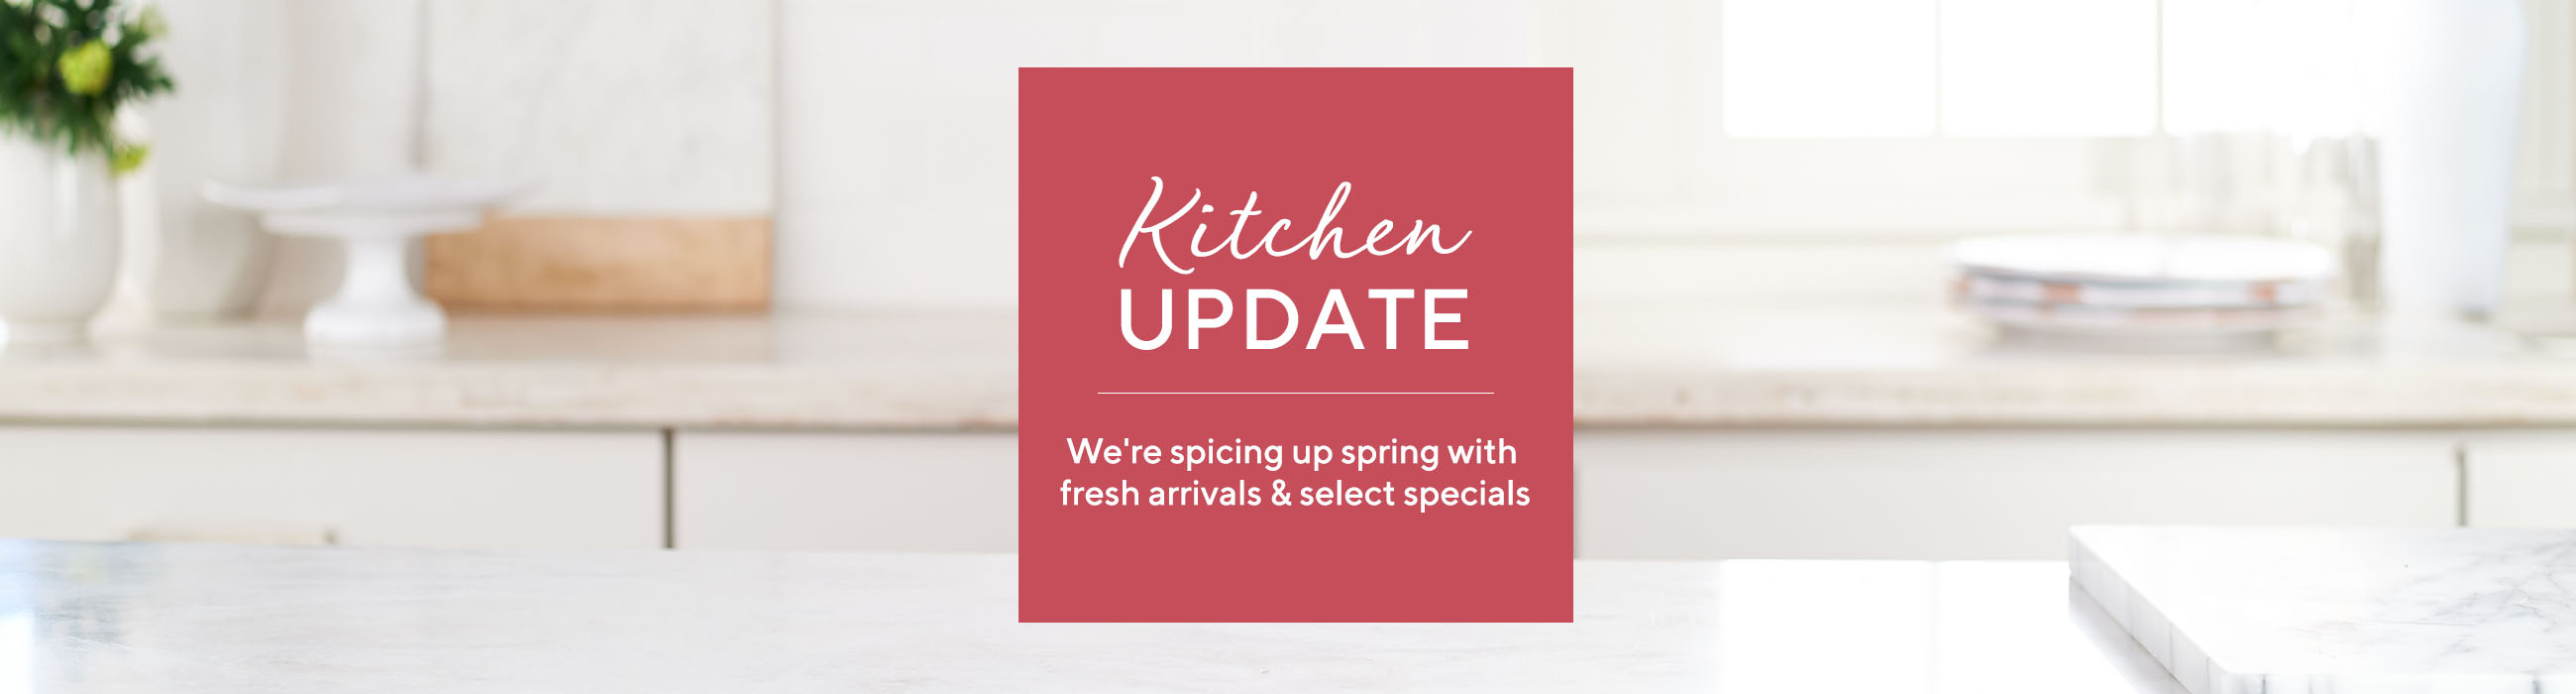 Kitchen Update - We're spicing up spring with fresh arrivals & select specials